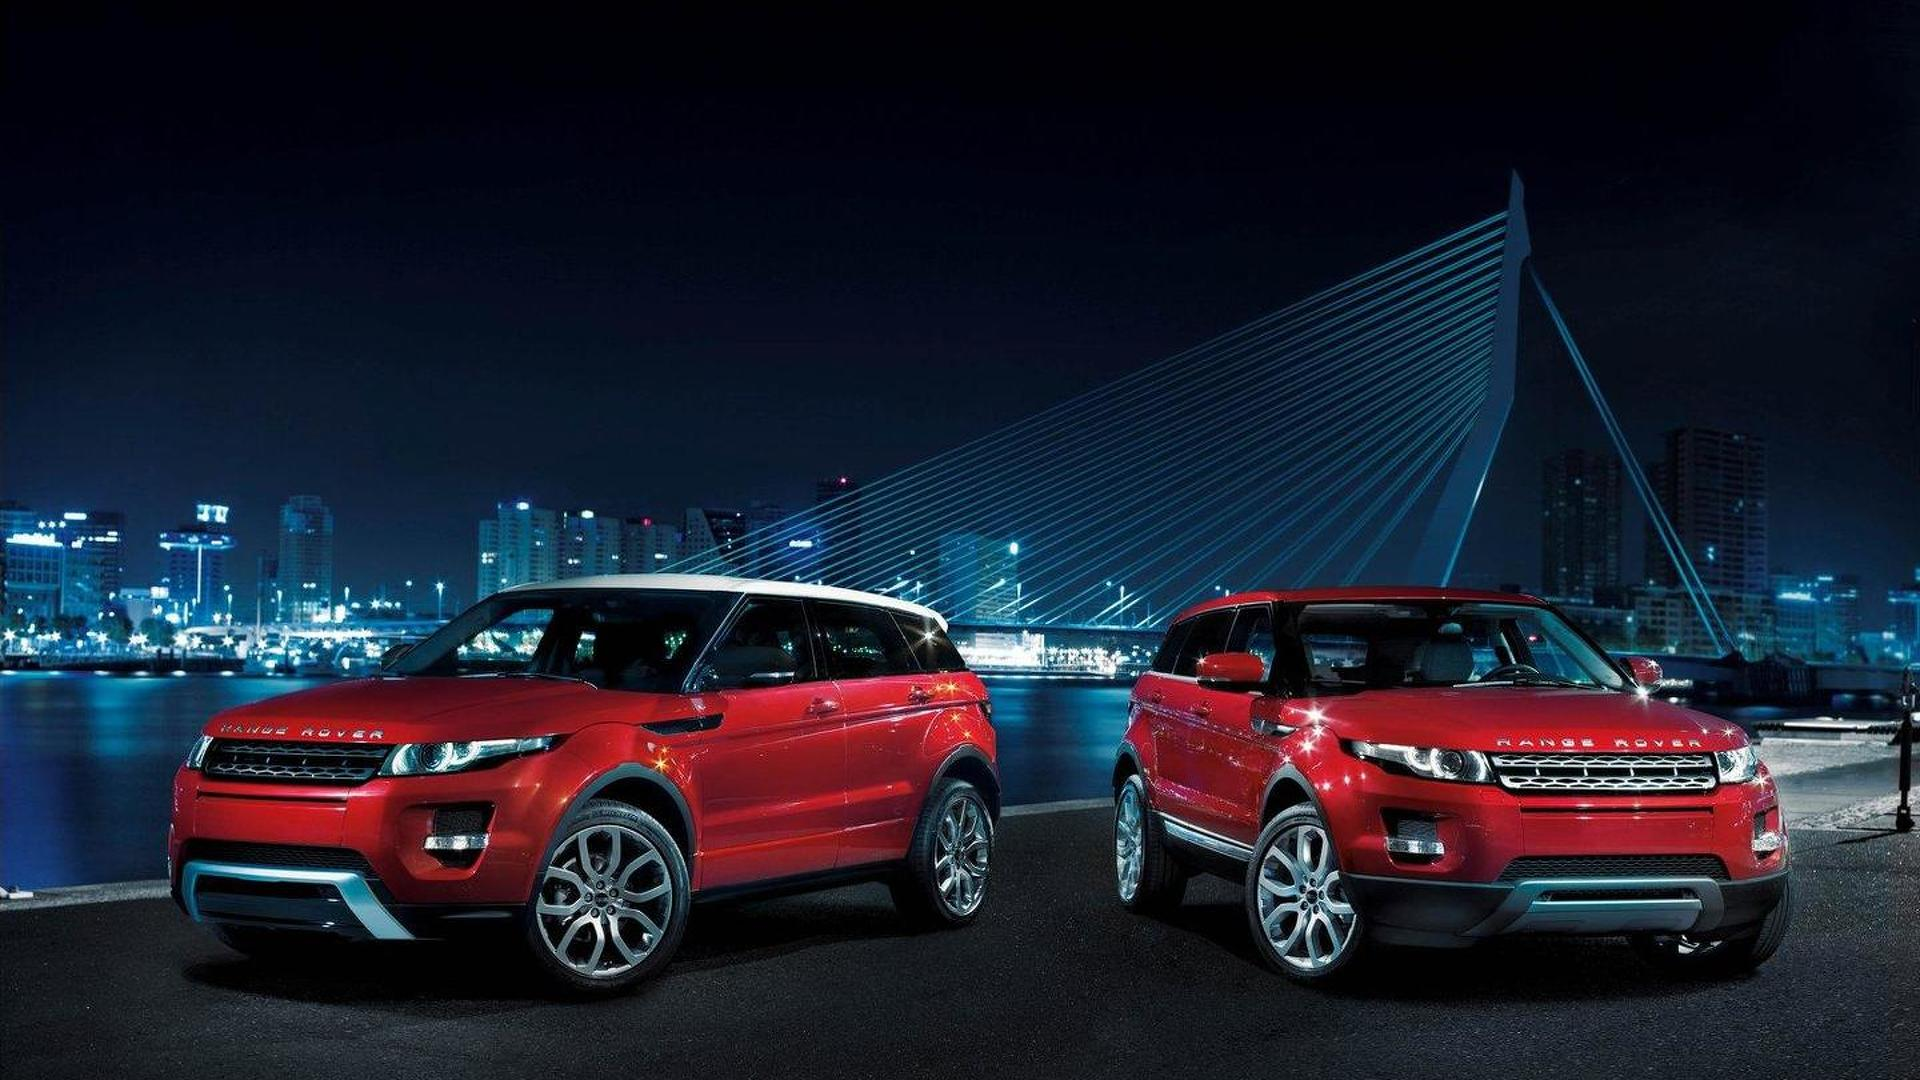 Range Rover Evoque XL under consideration - report